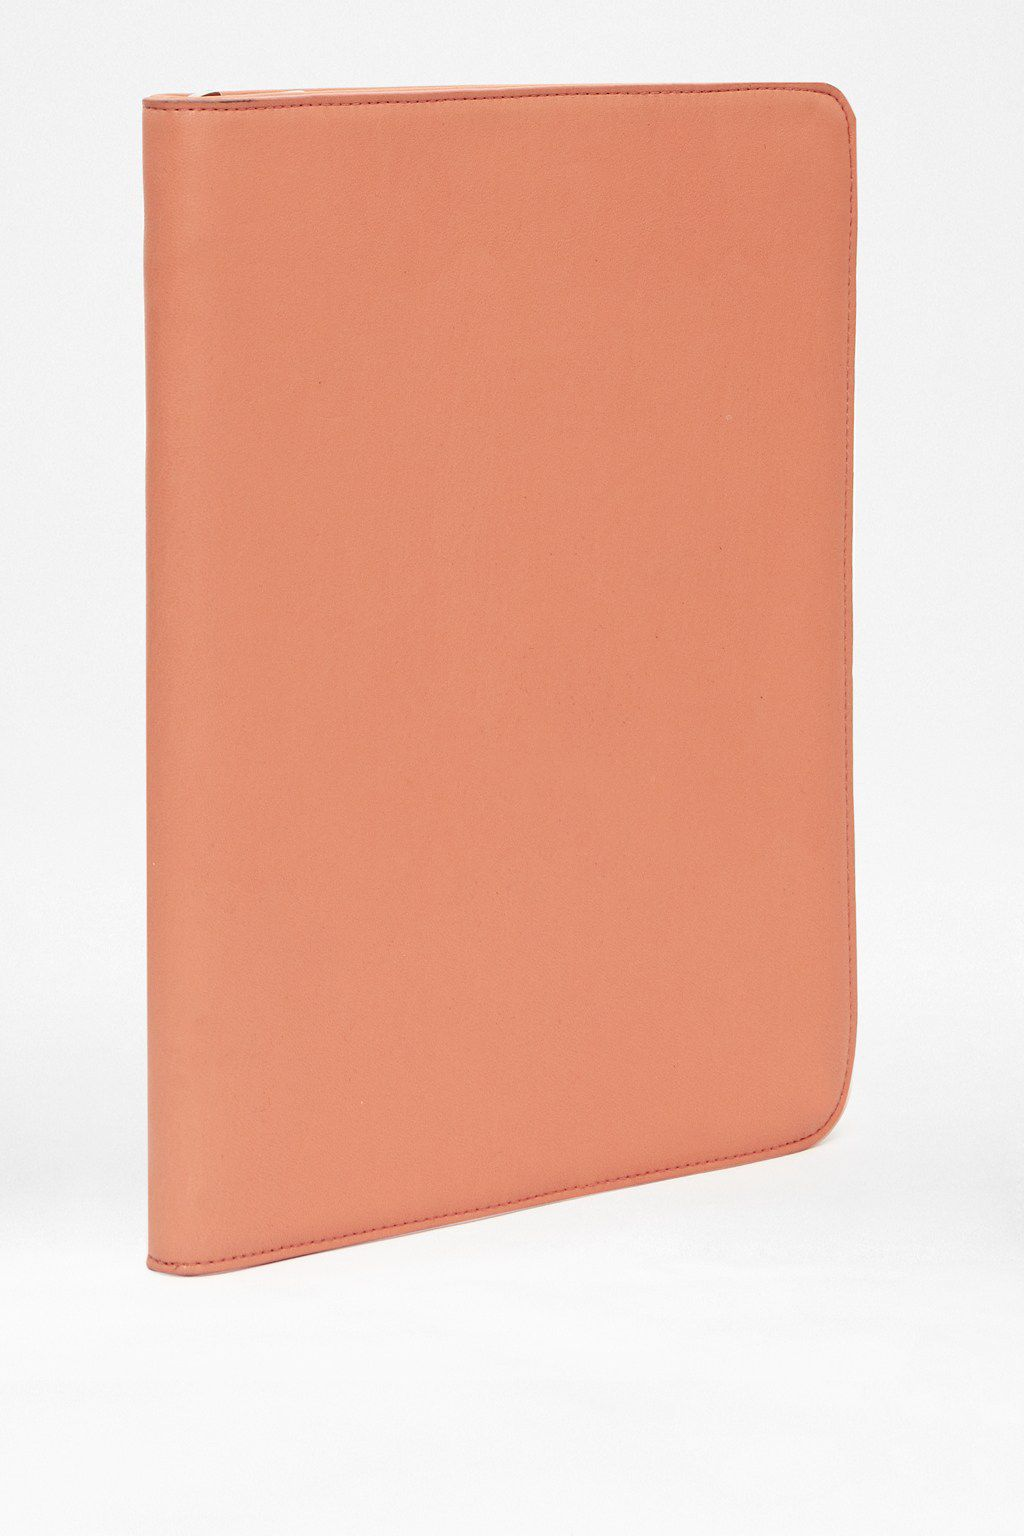 Bibi ipad cover